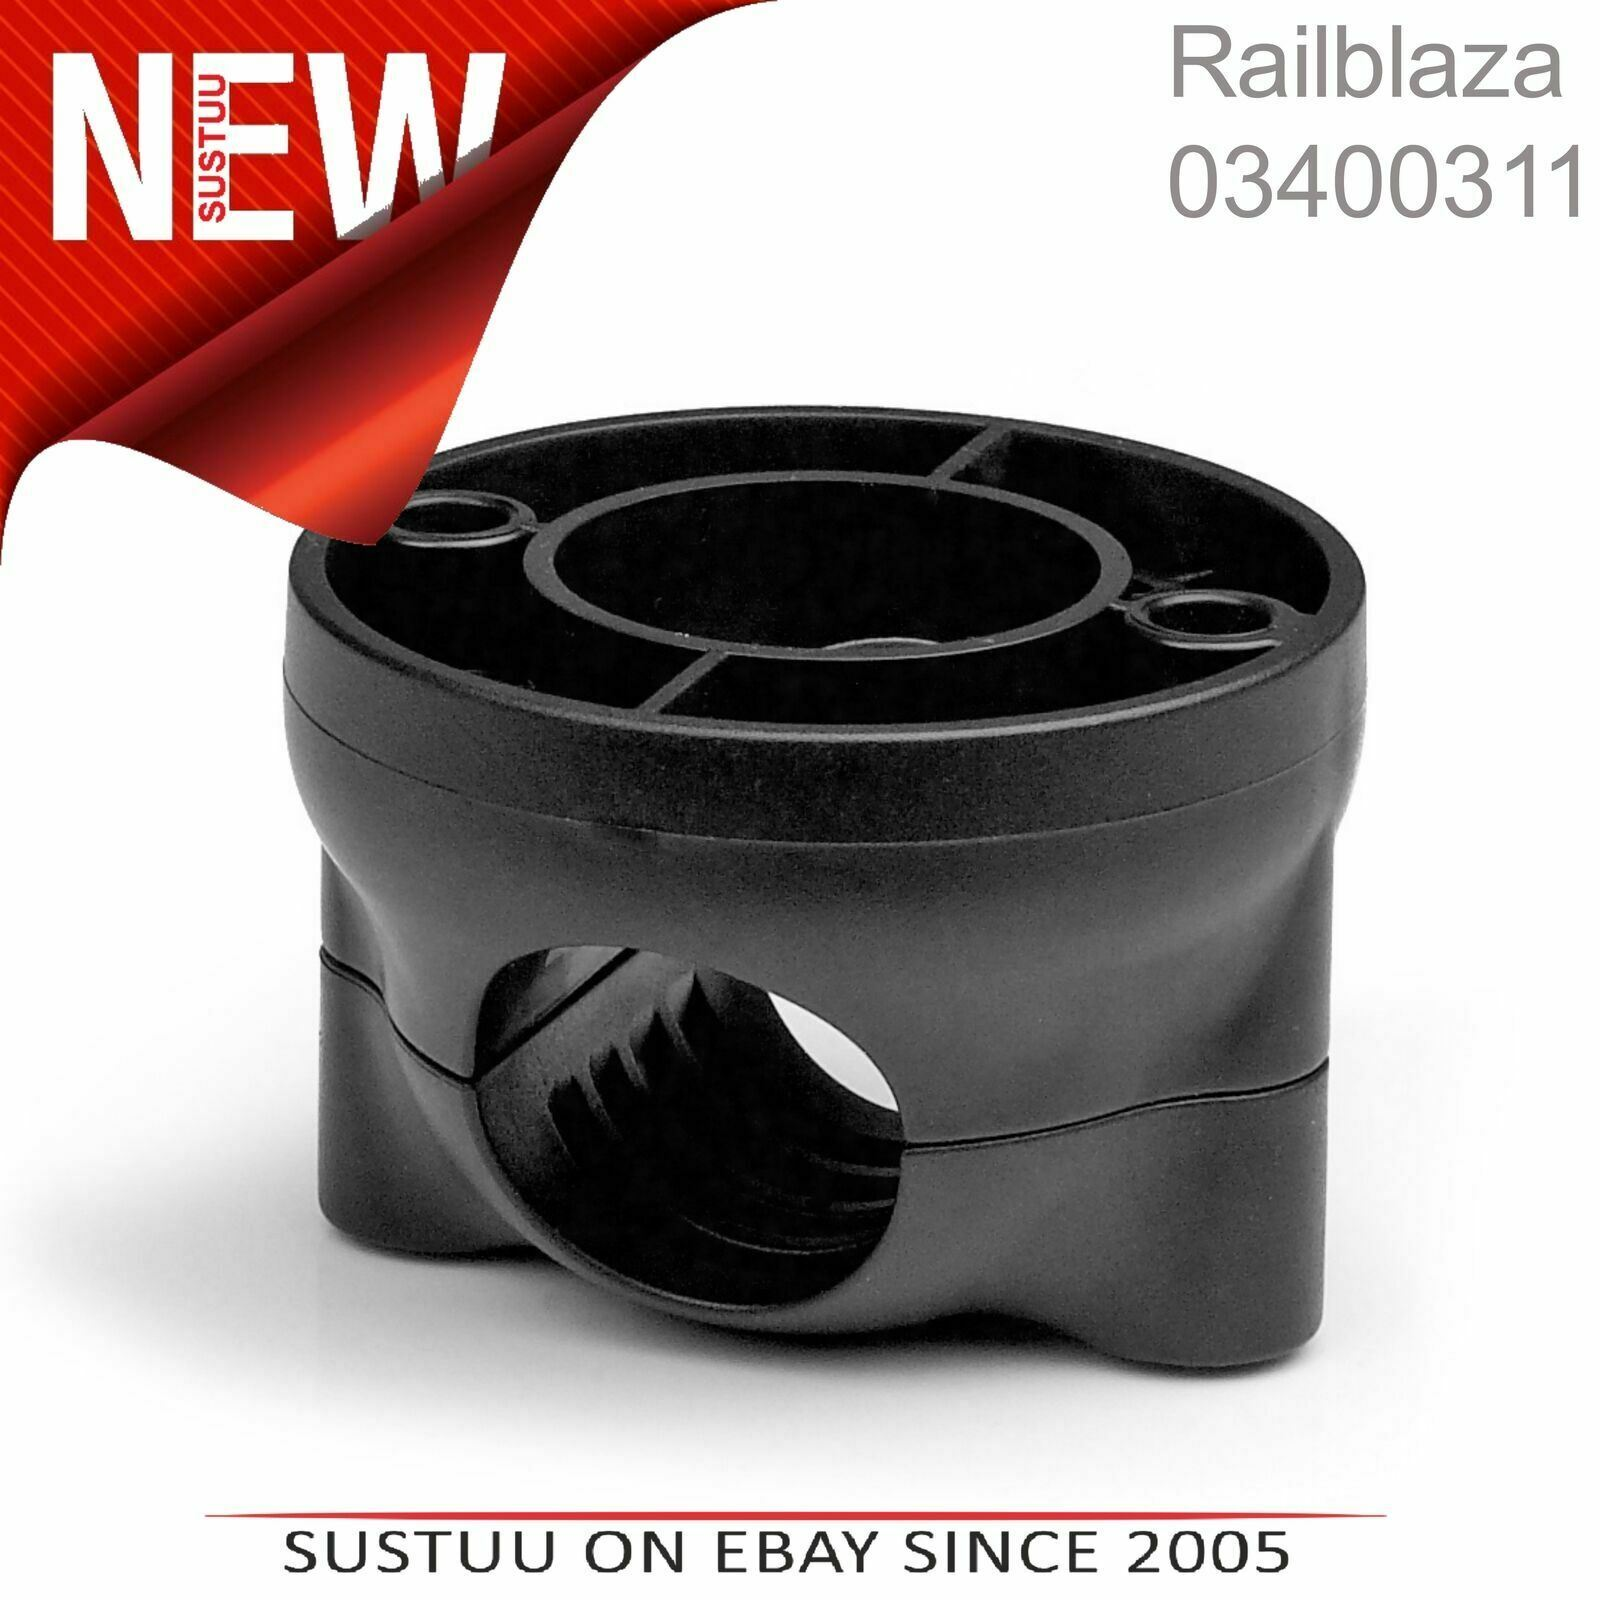 Railblaza Illuminate i360 All-Round Navigation Light│For Kayak Fishing│Black